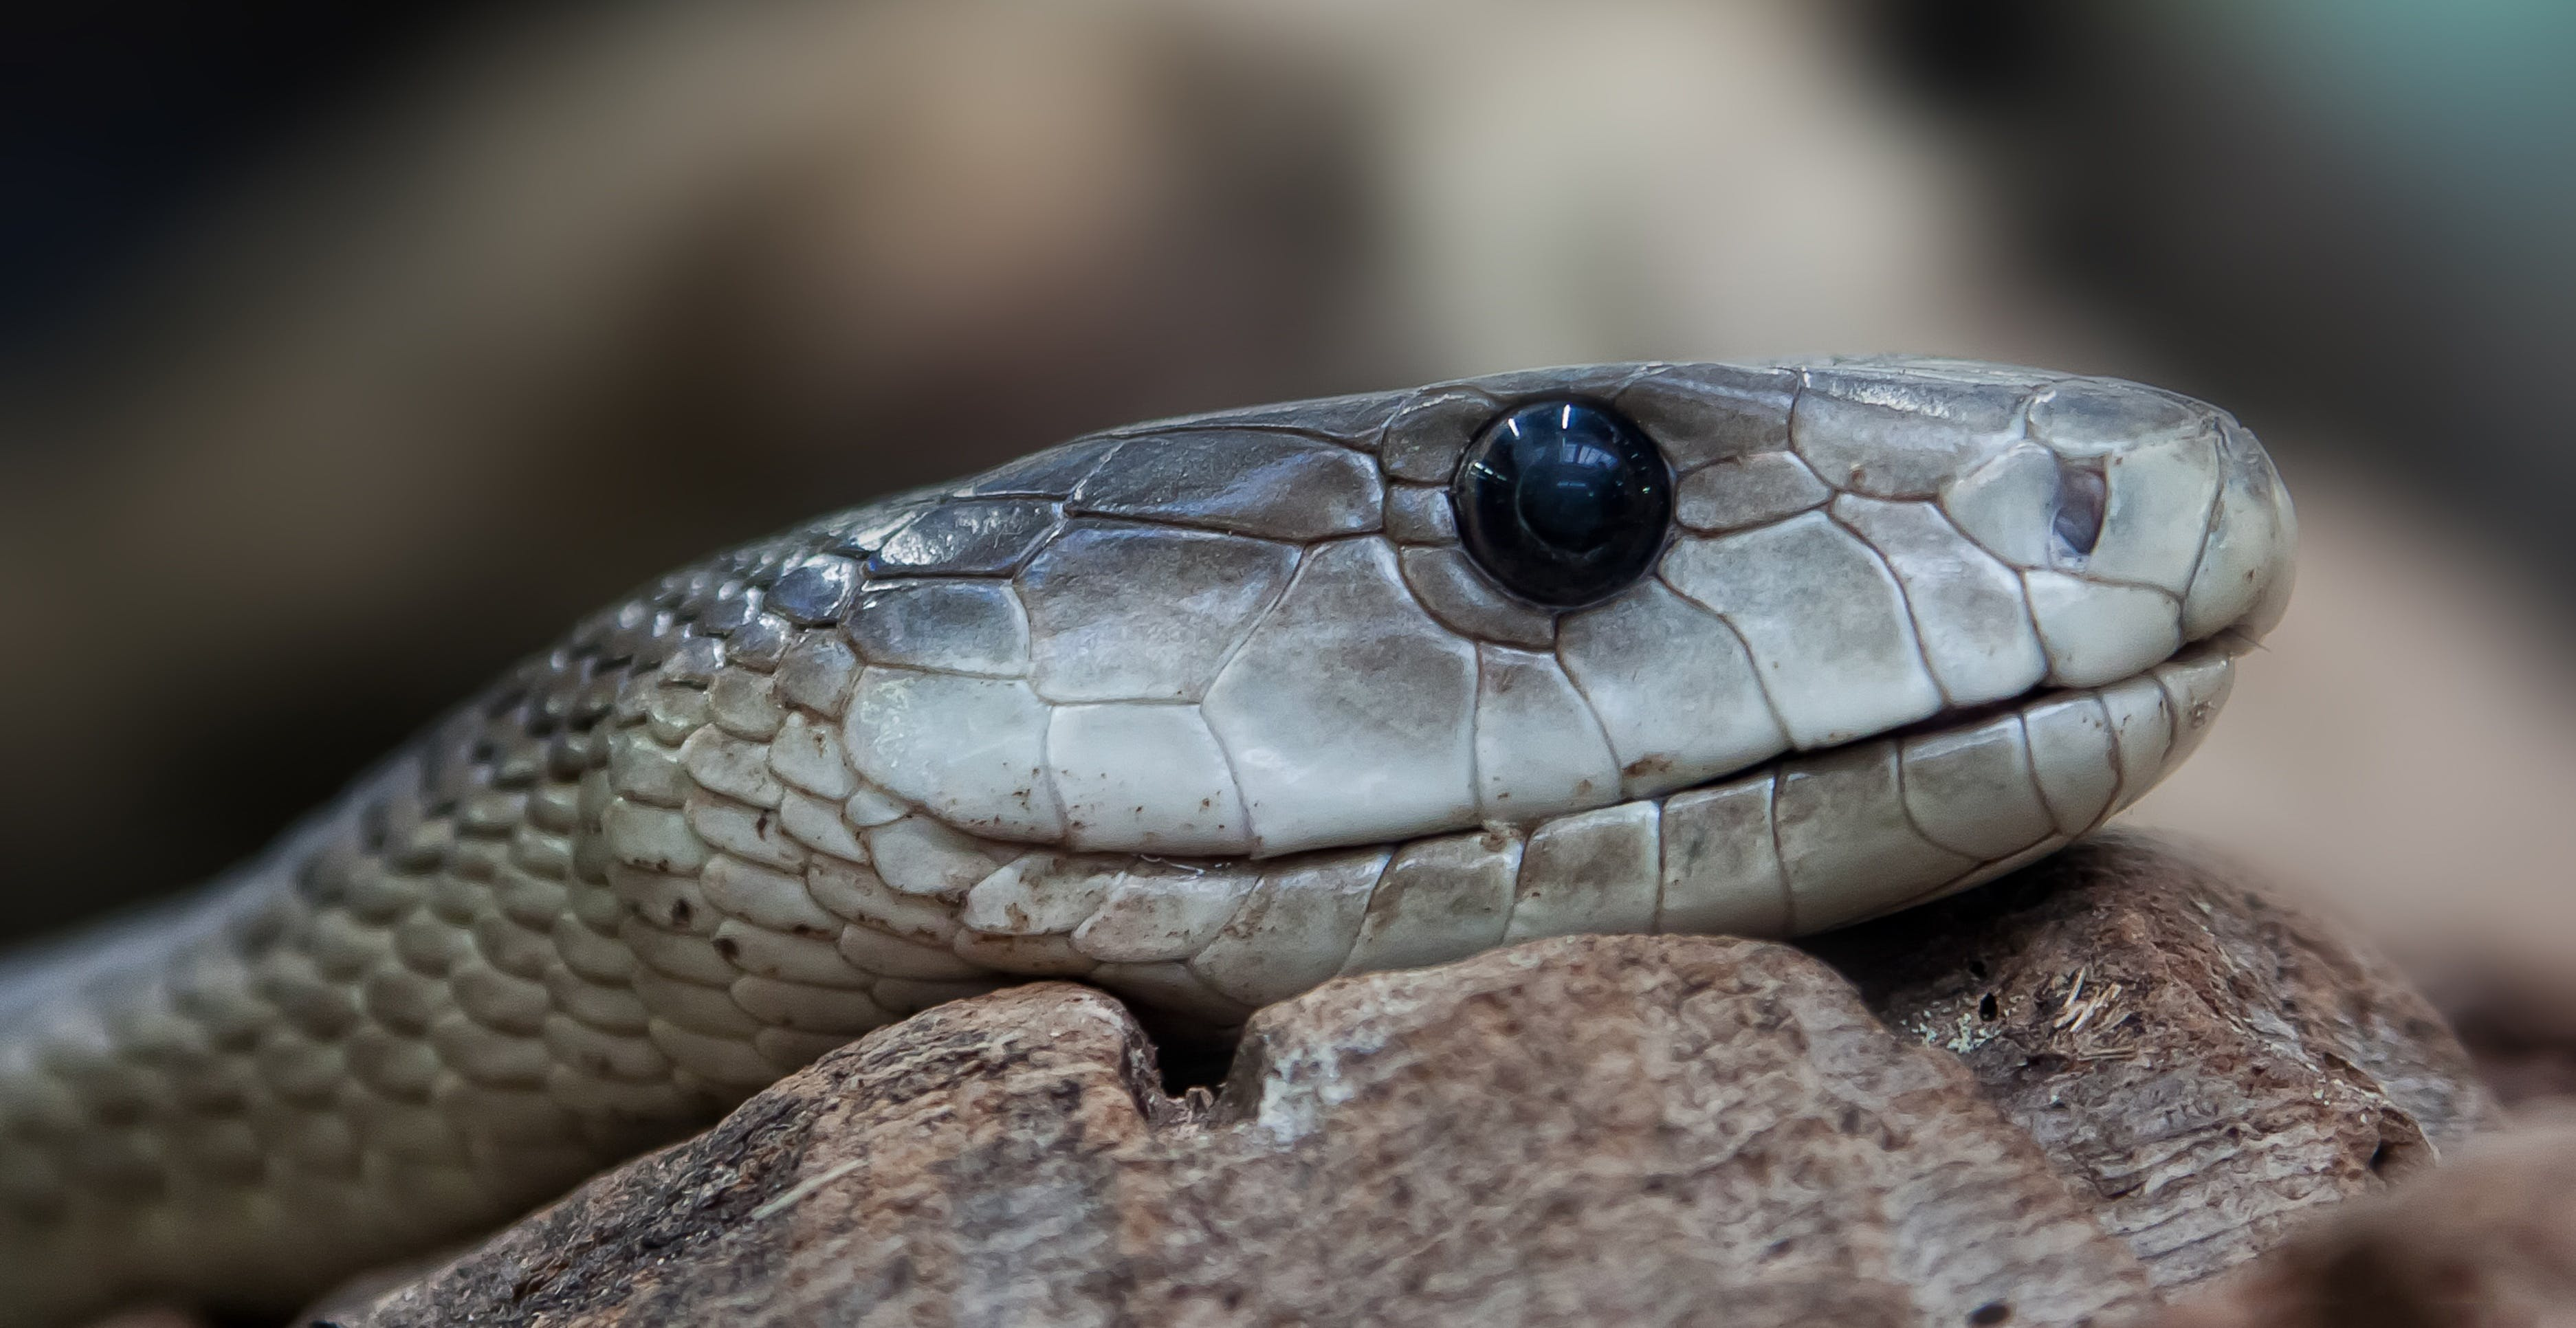 Free stock photo of animal, reptile, macro, close-up